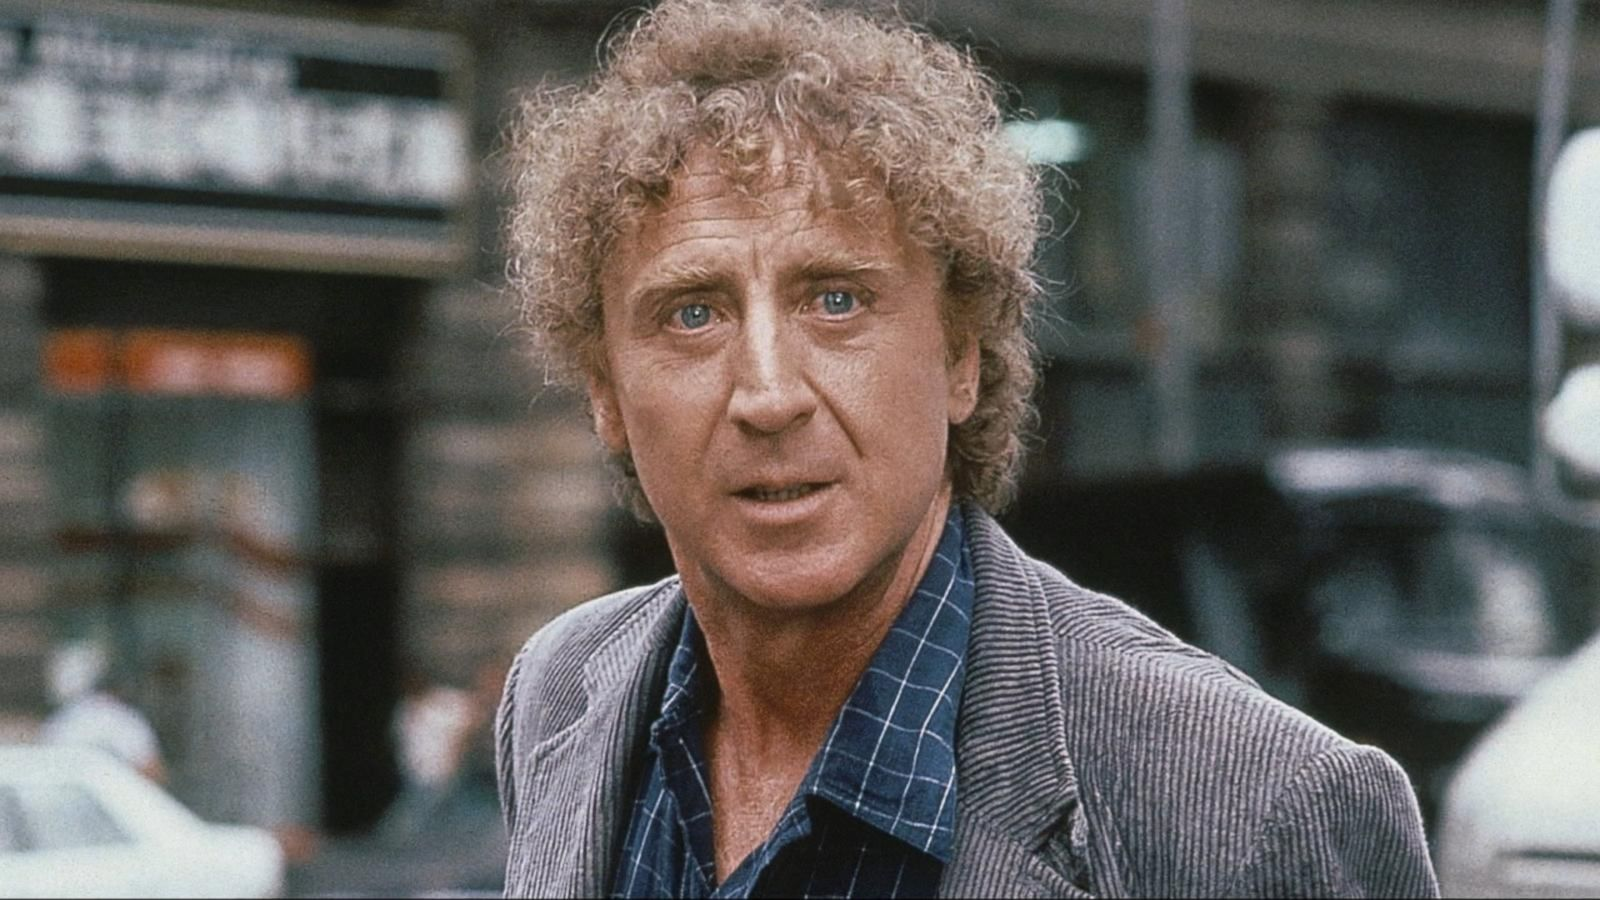 VIDEO: Comic Legend Gene Wilder Dies at Age 83